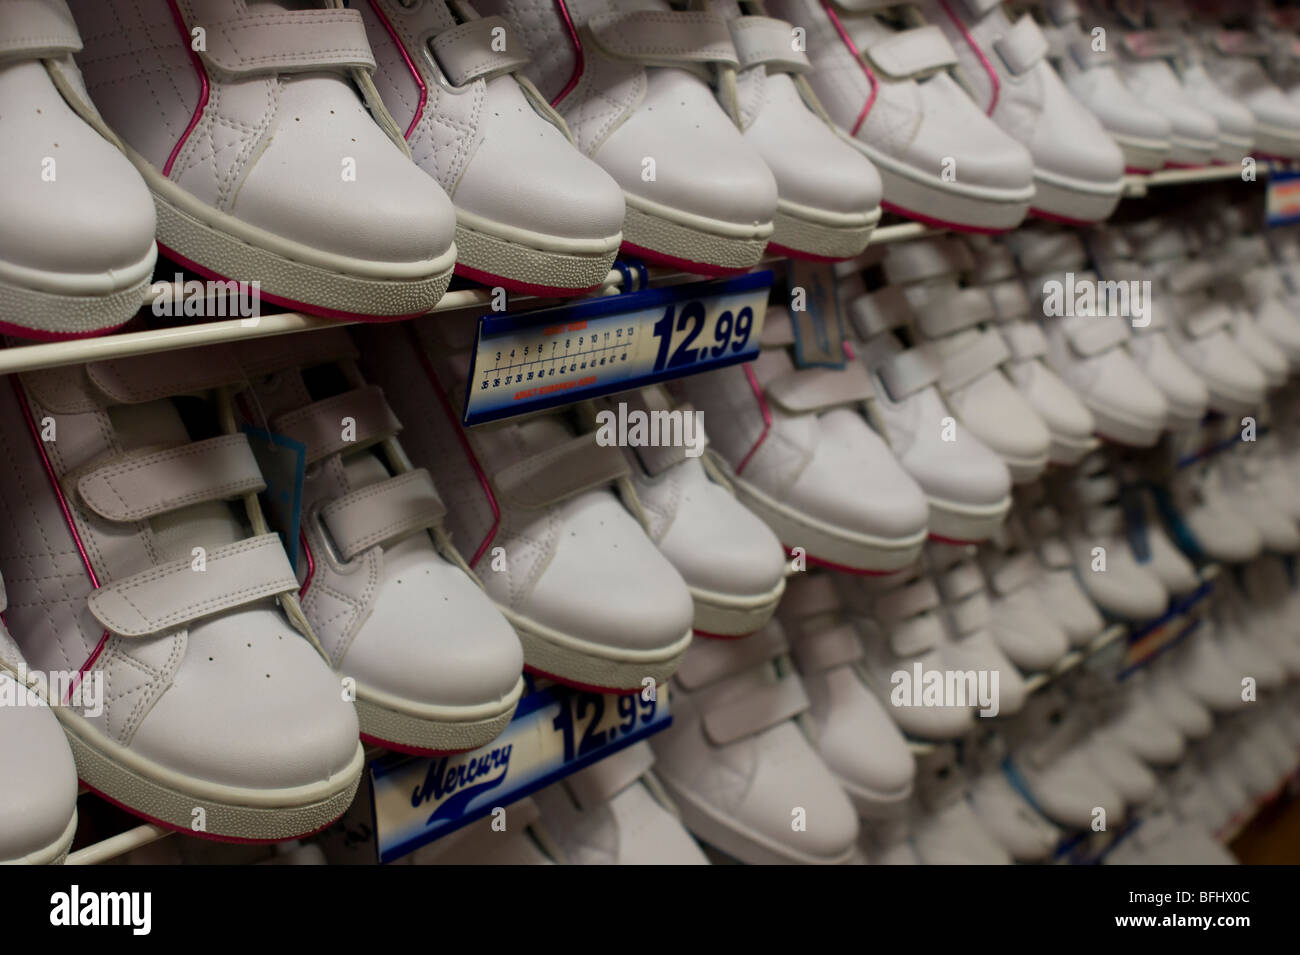 Rows of childrens trainers for sale in a North  London shoe shop - Stock Image